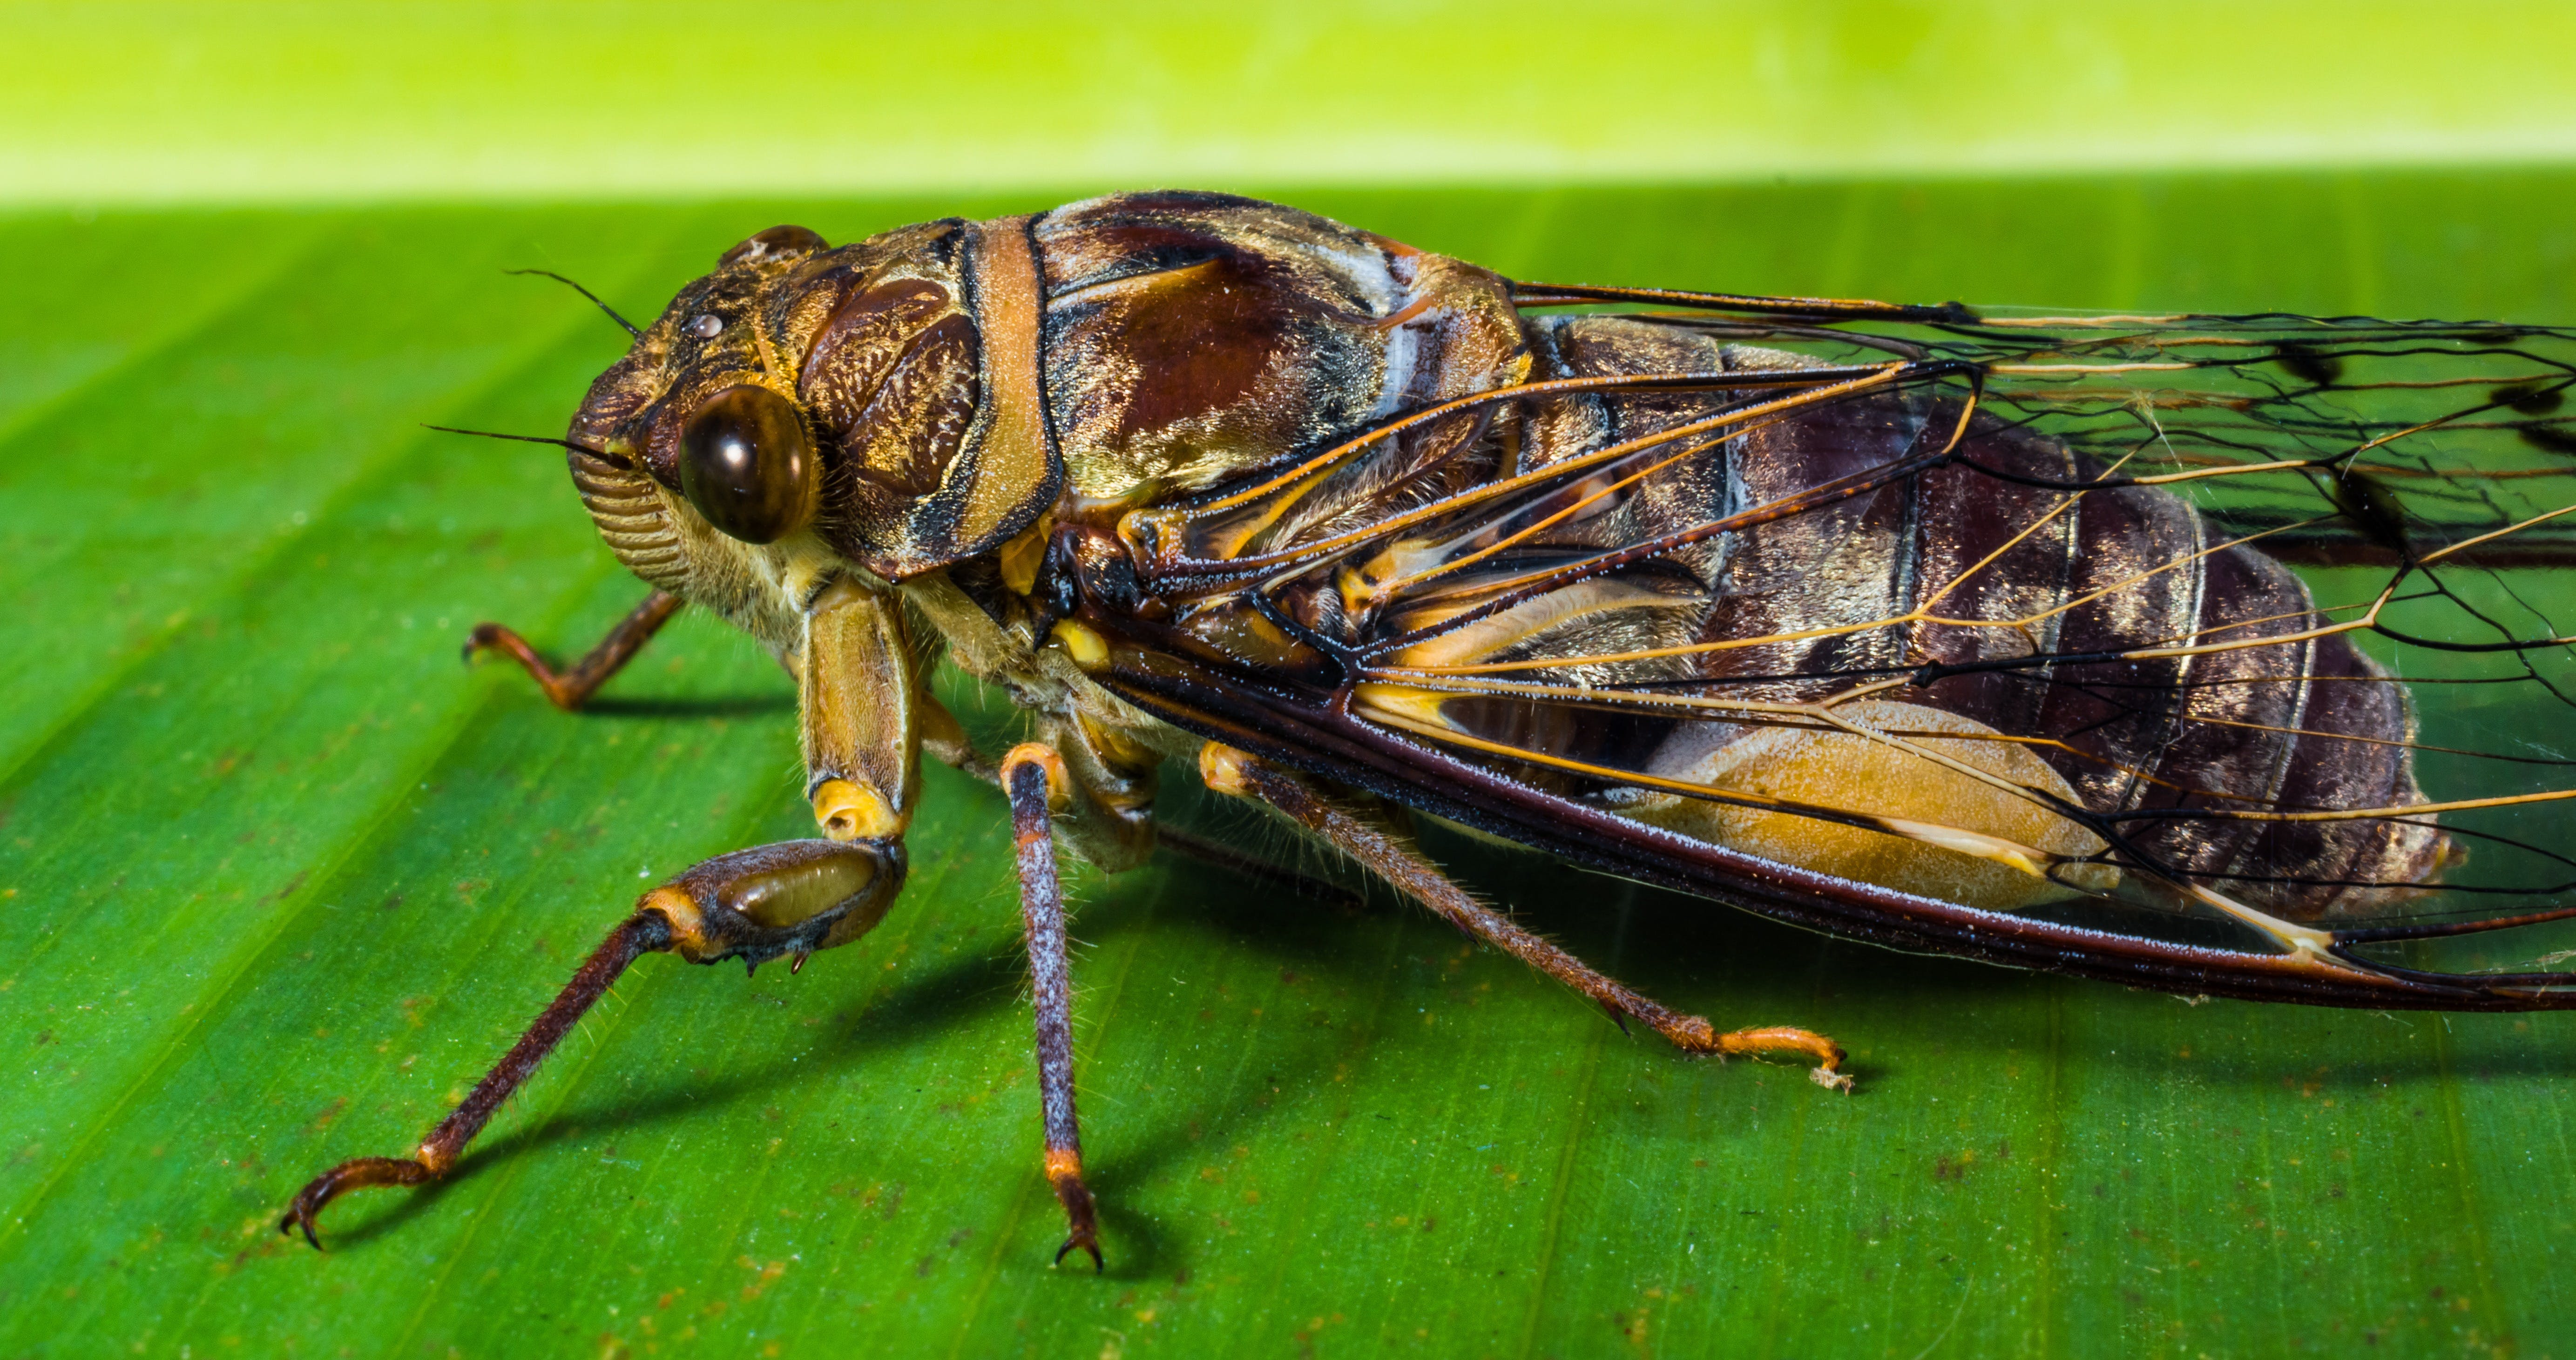 Brown and Black Cicada Perching on Green Leaf